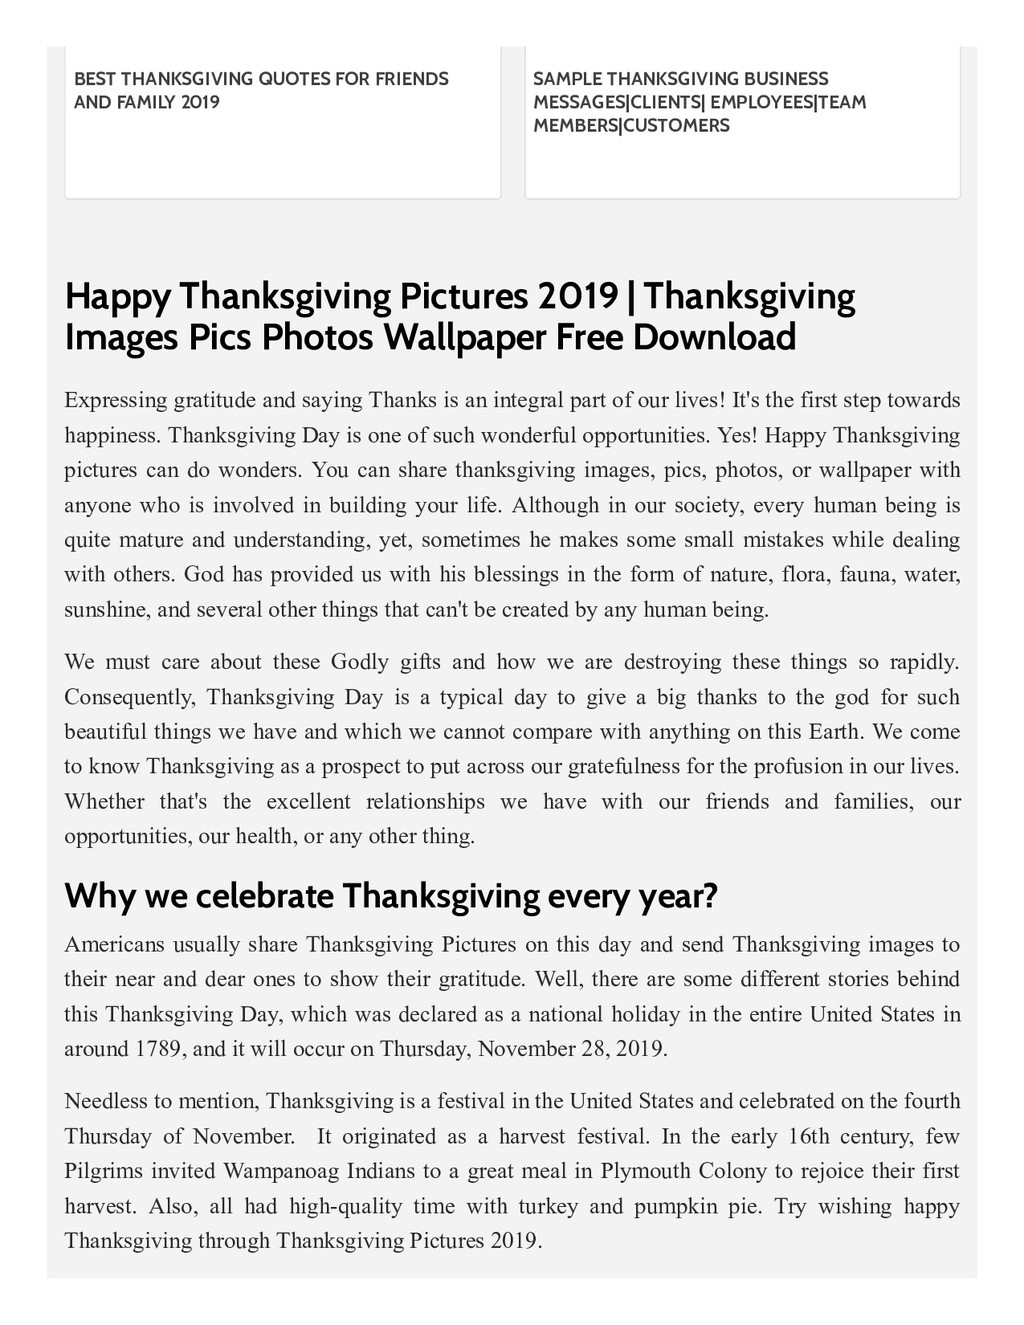 Happy Thanksgiving Pictures 2019 | Thanksgiving...